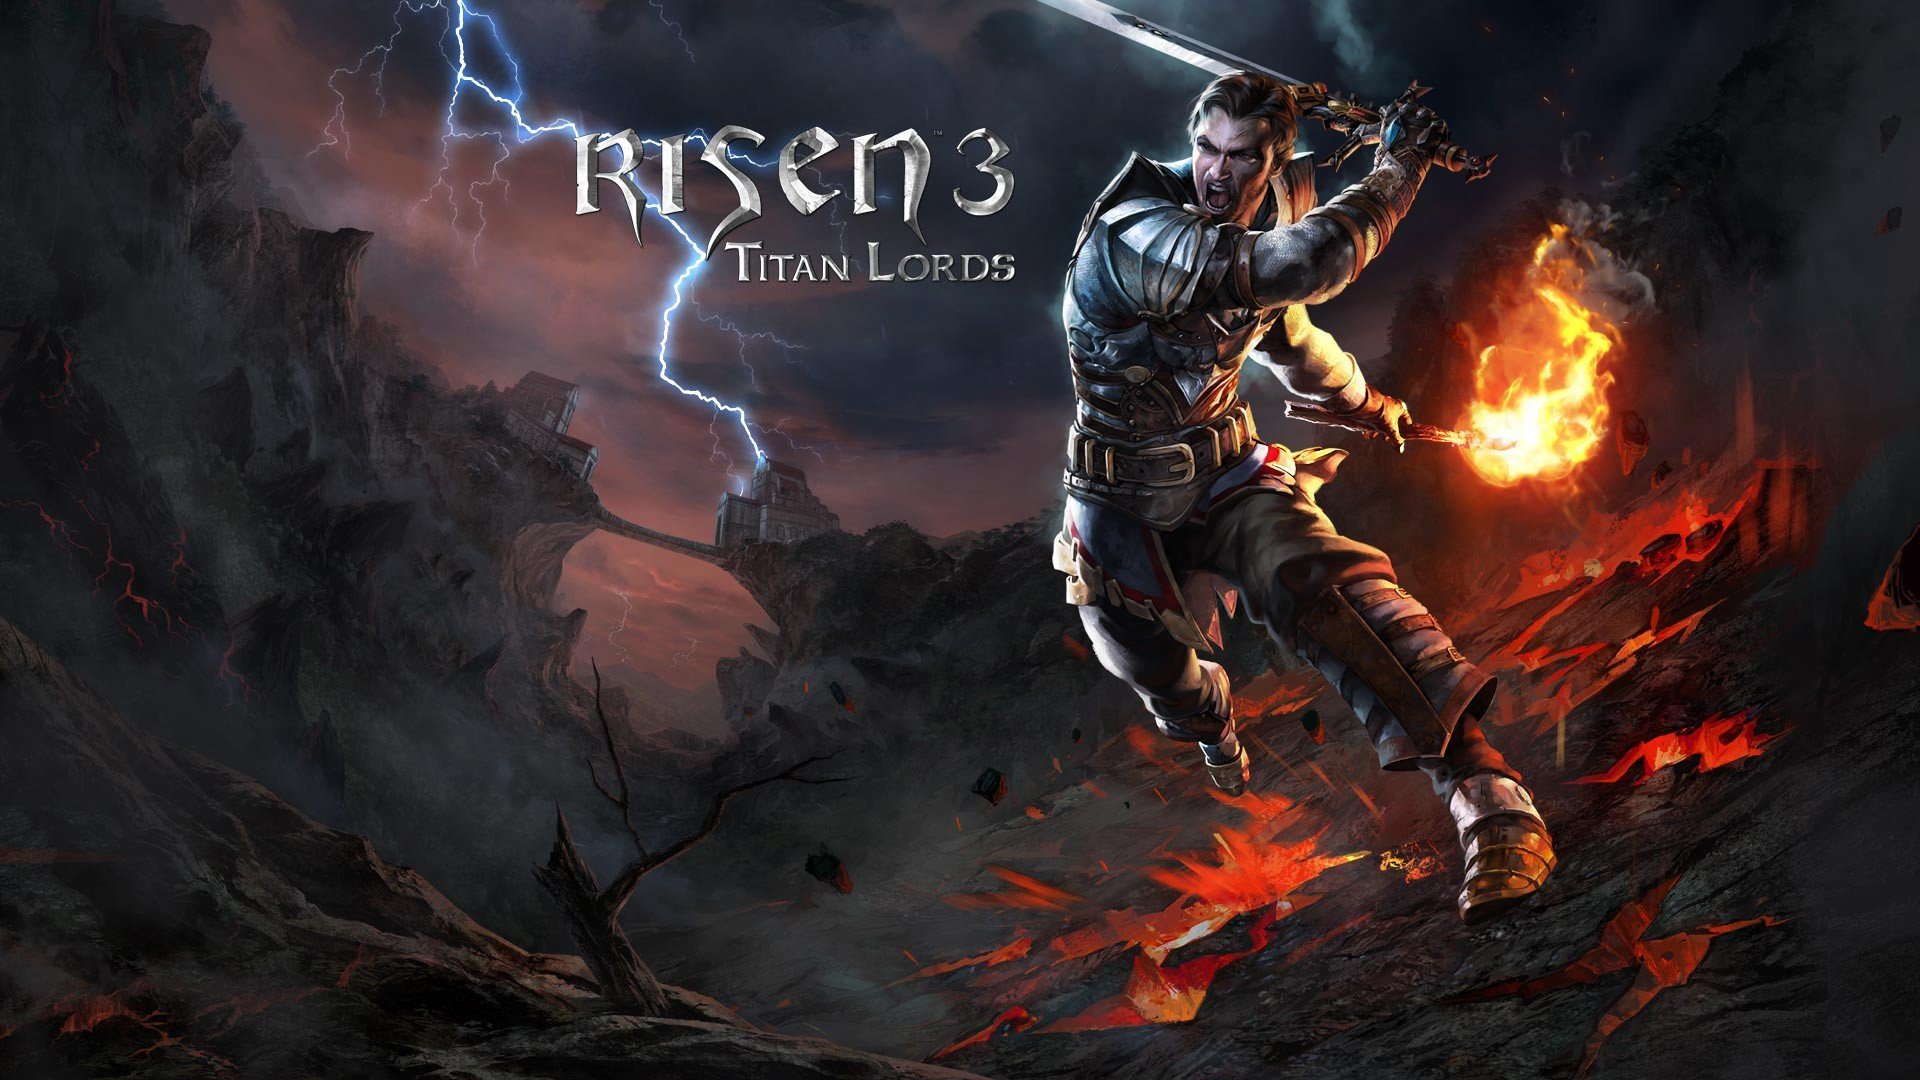 Risen3 : games like Skyrim